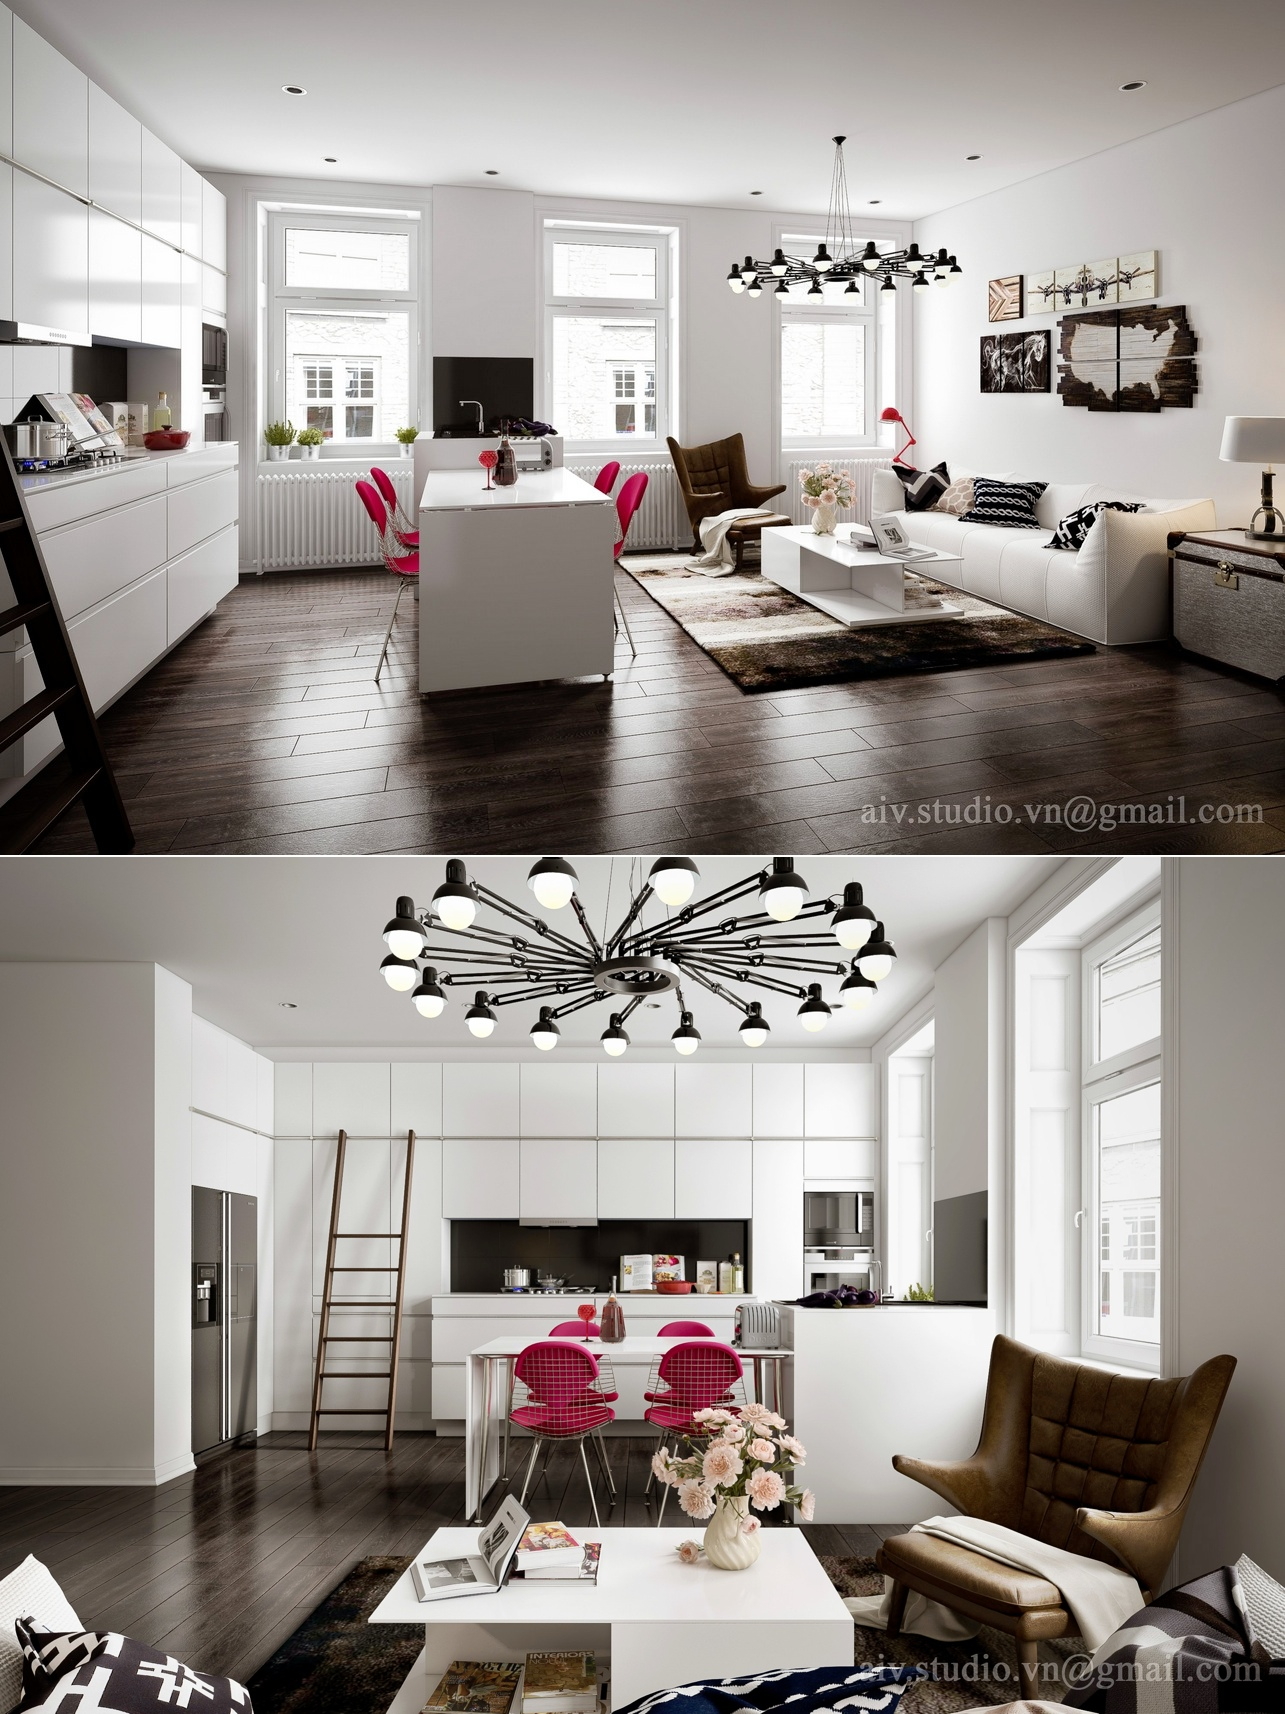 Studio apartment interiors inspiration for Apartment decorating